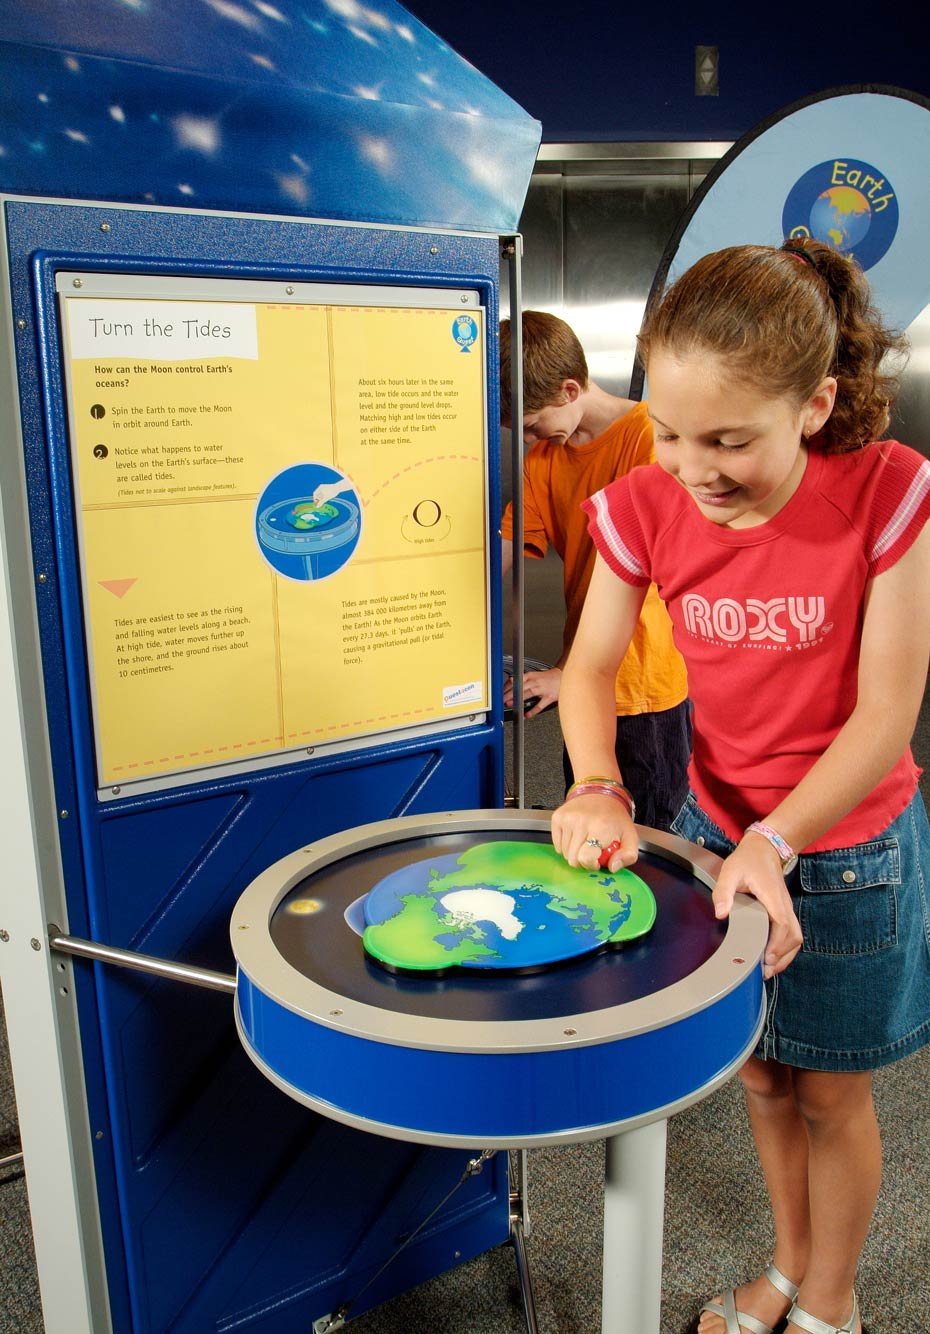 A young girl is standing next to a yellow and blue table and exhibition panel. She is winding a red handle on the surface of the table which in turn is attached to a flat blue, white and green earth picture.